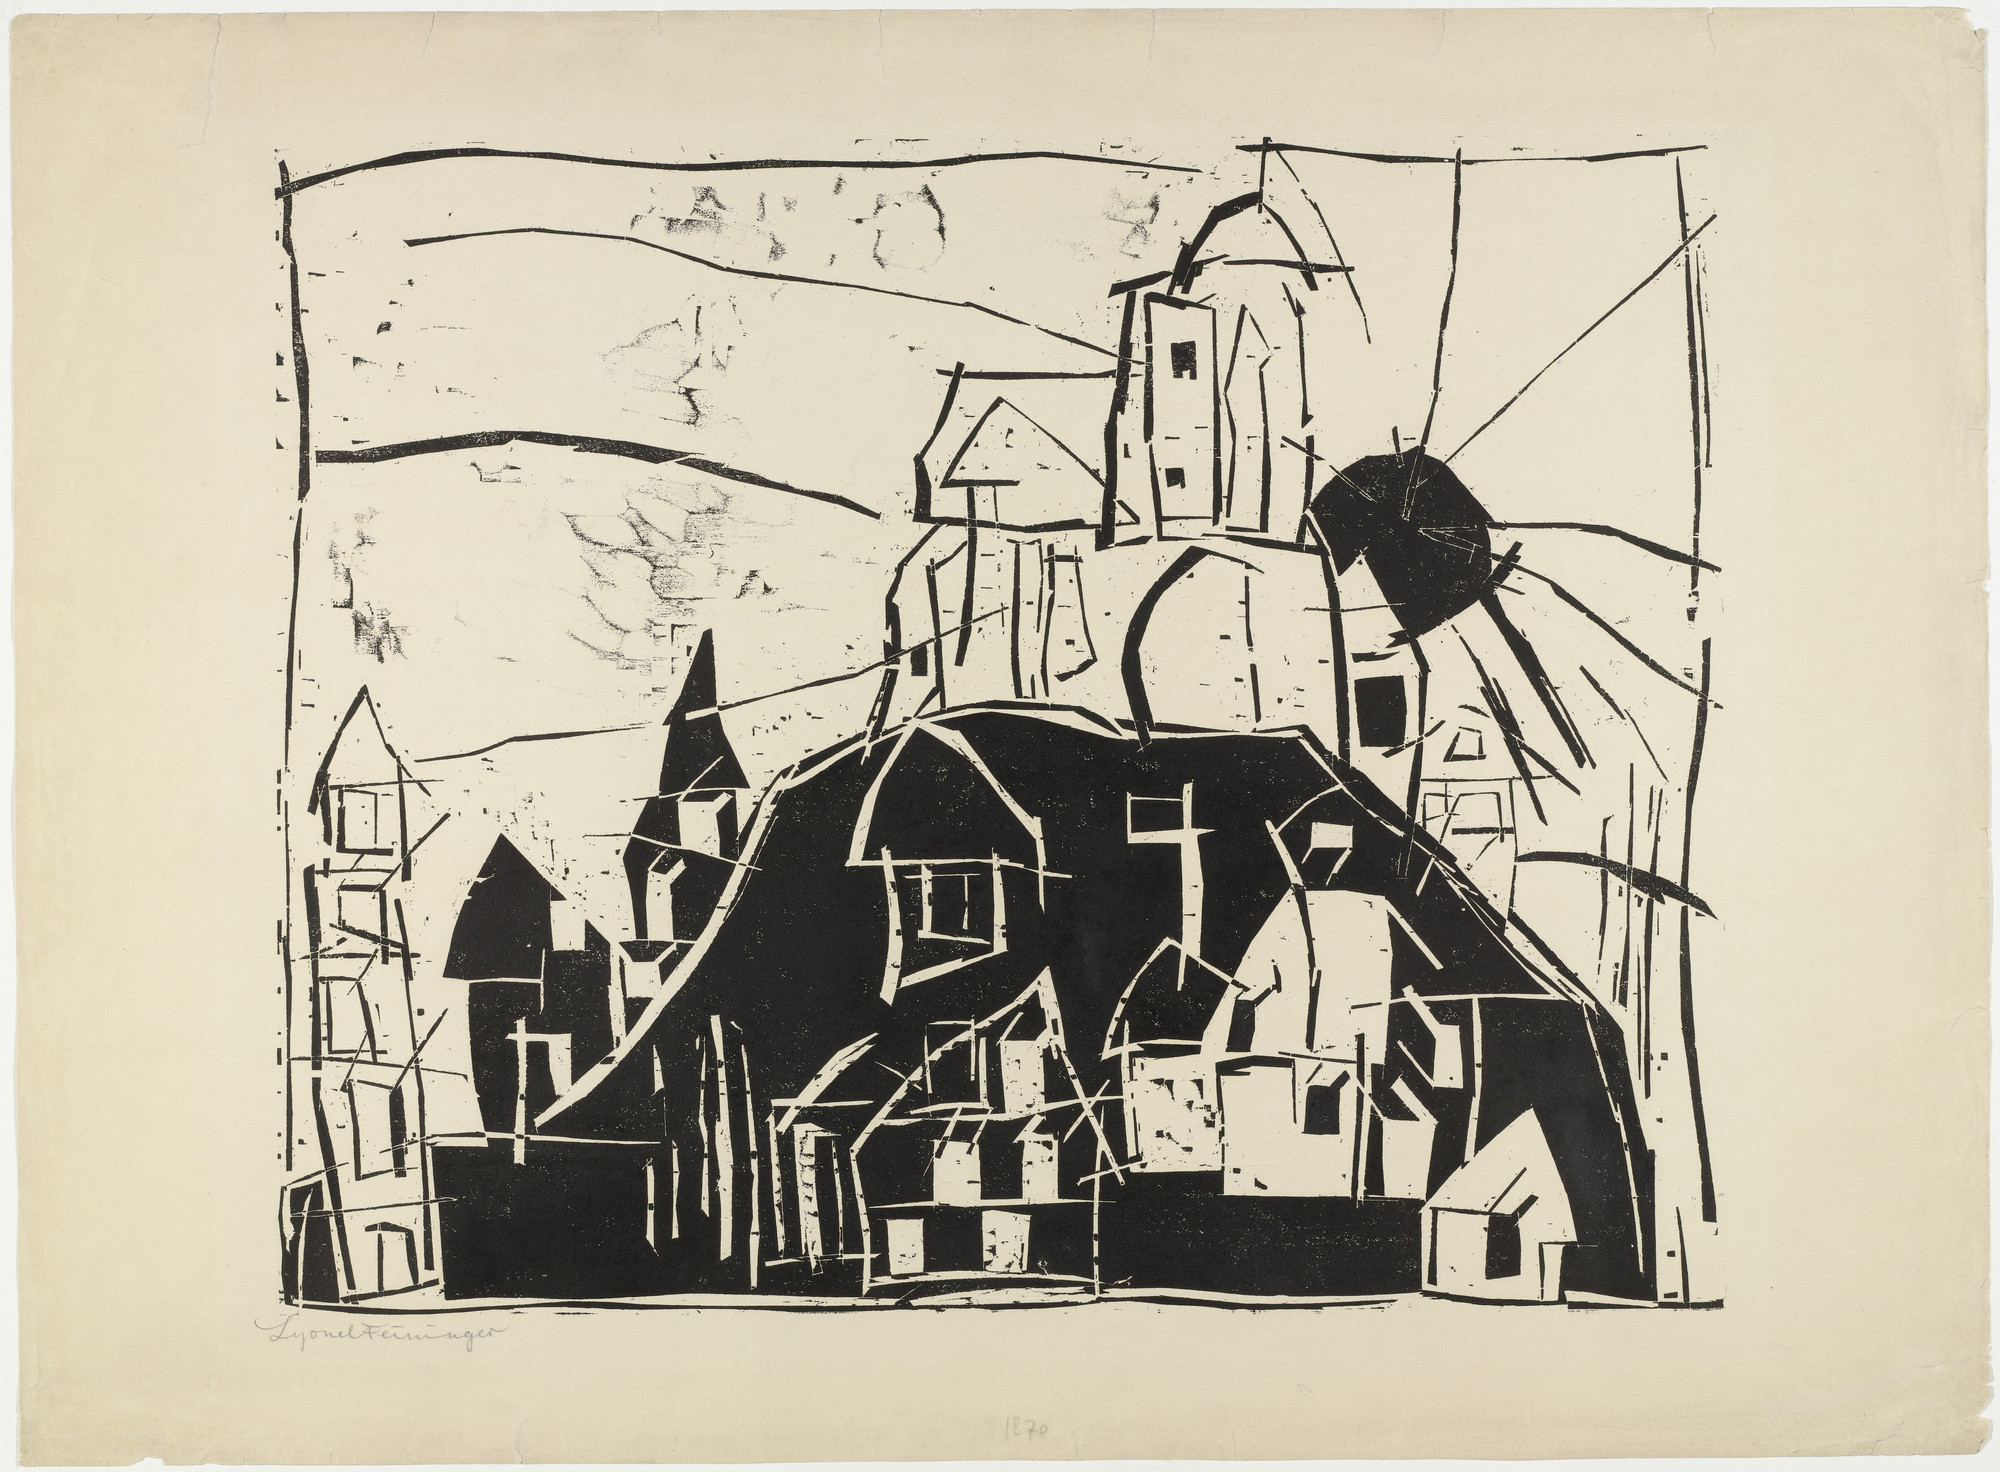 Lyonel Feininger. City on the Mountain (Stadt auf dem Berge). 1918